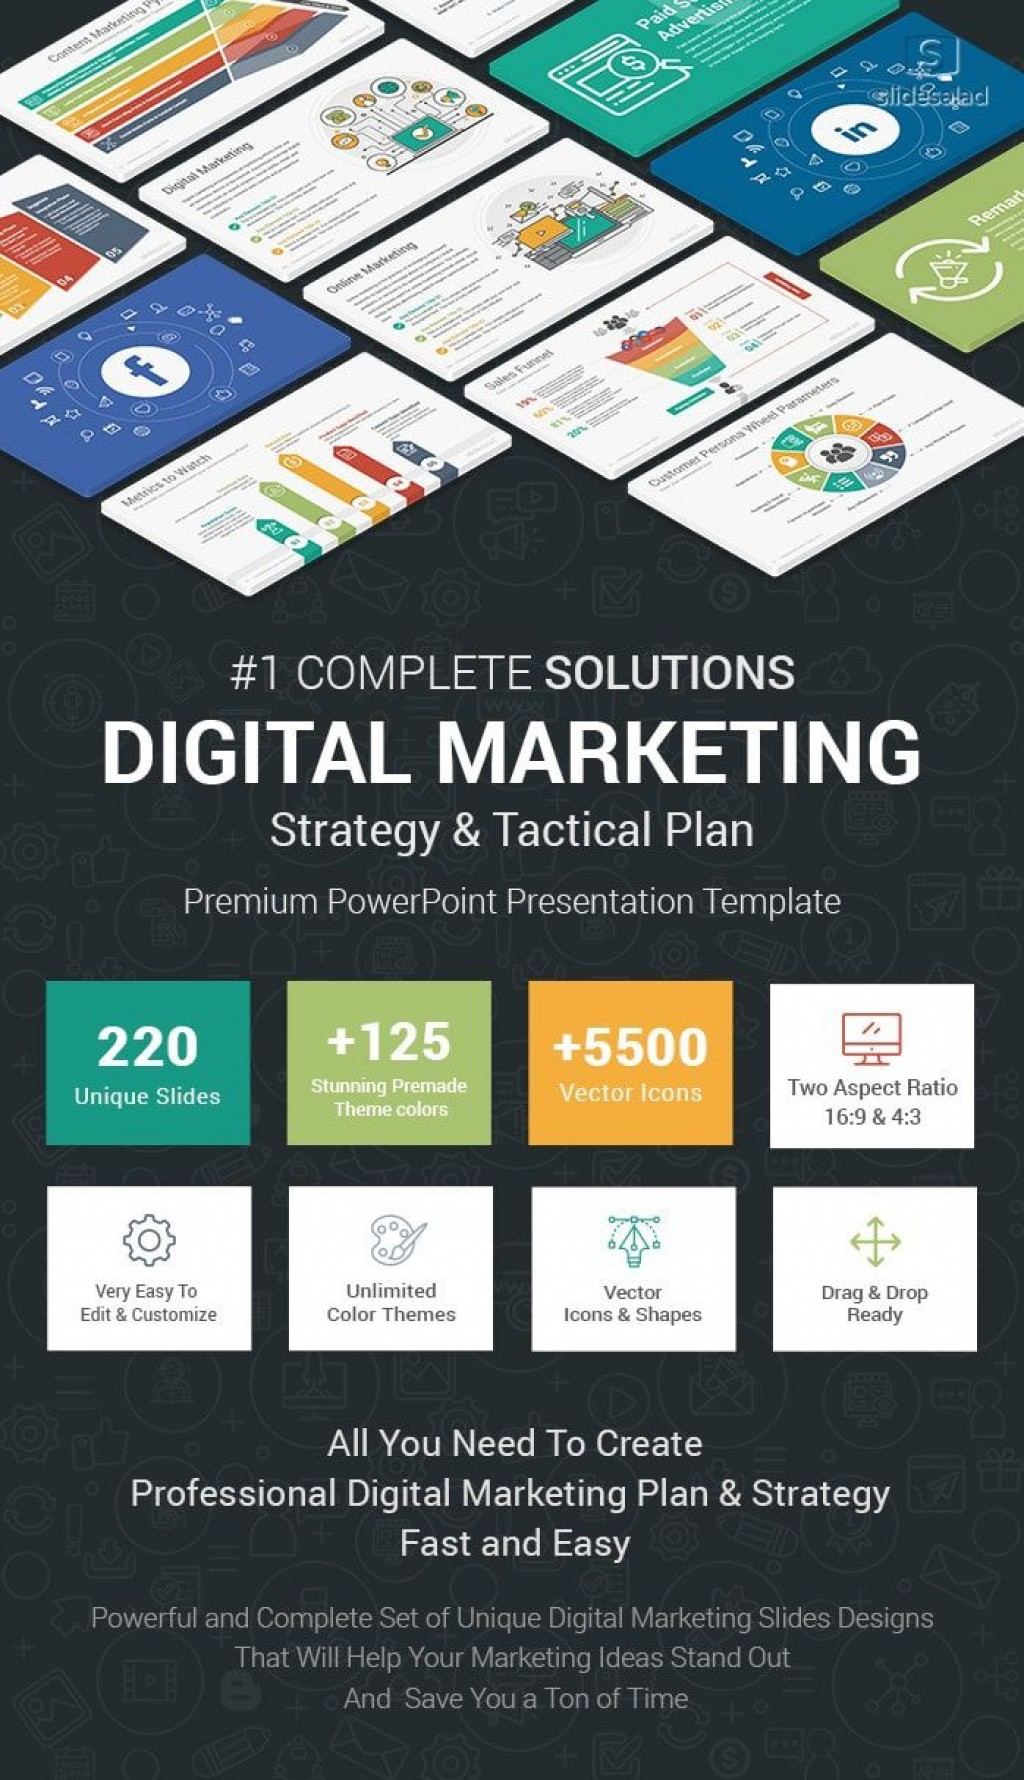 004 Fearsome Free Digital Marketing Plan Template Ppt Design Large